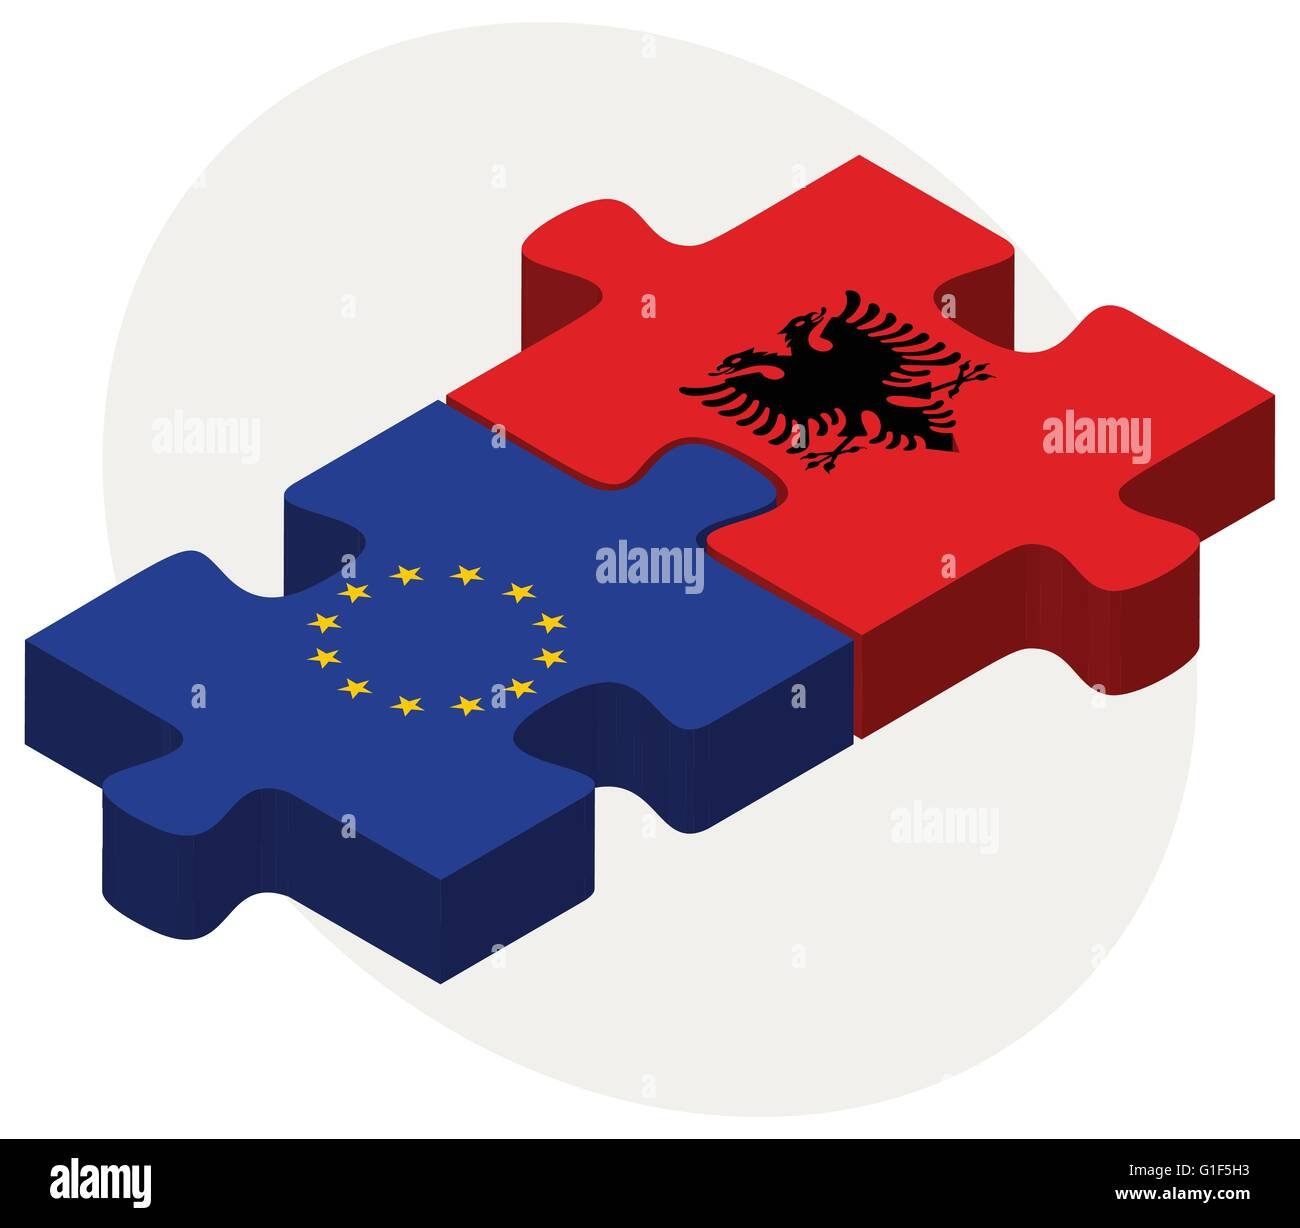 Vector Image - European Union and Albania Flags in puzzle  isolated on white background - Stock Image